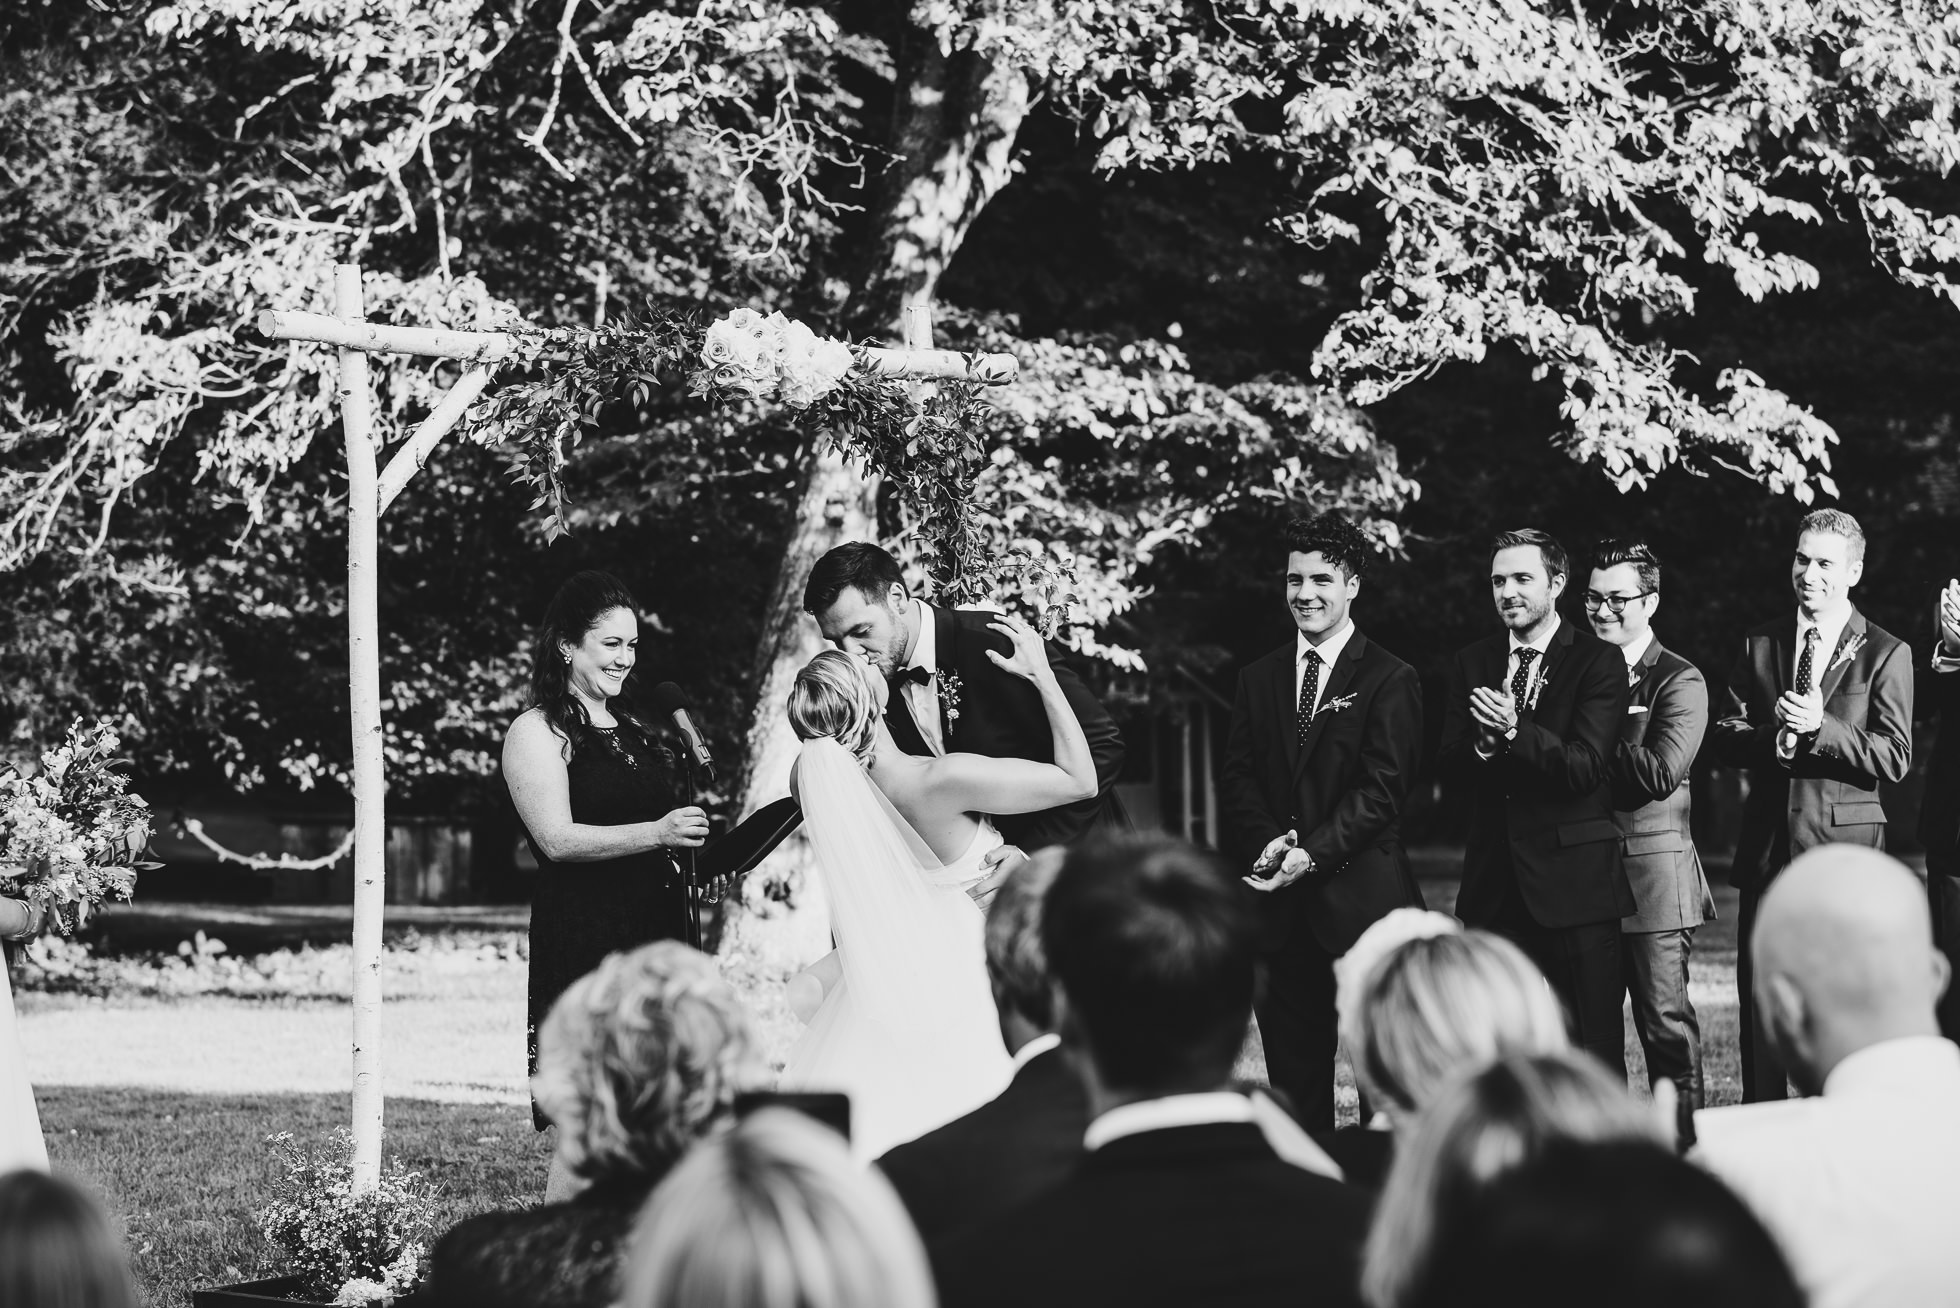 first kiss wedding ceremony at lyndhurst castle photographed by traverse the tides